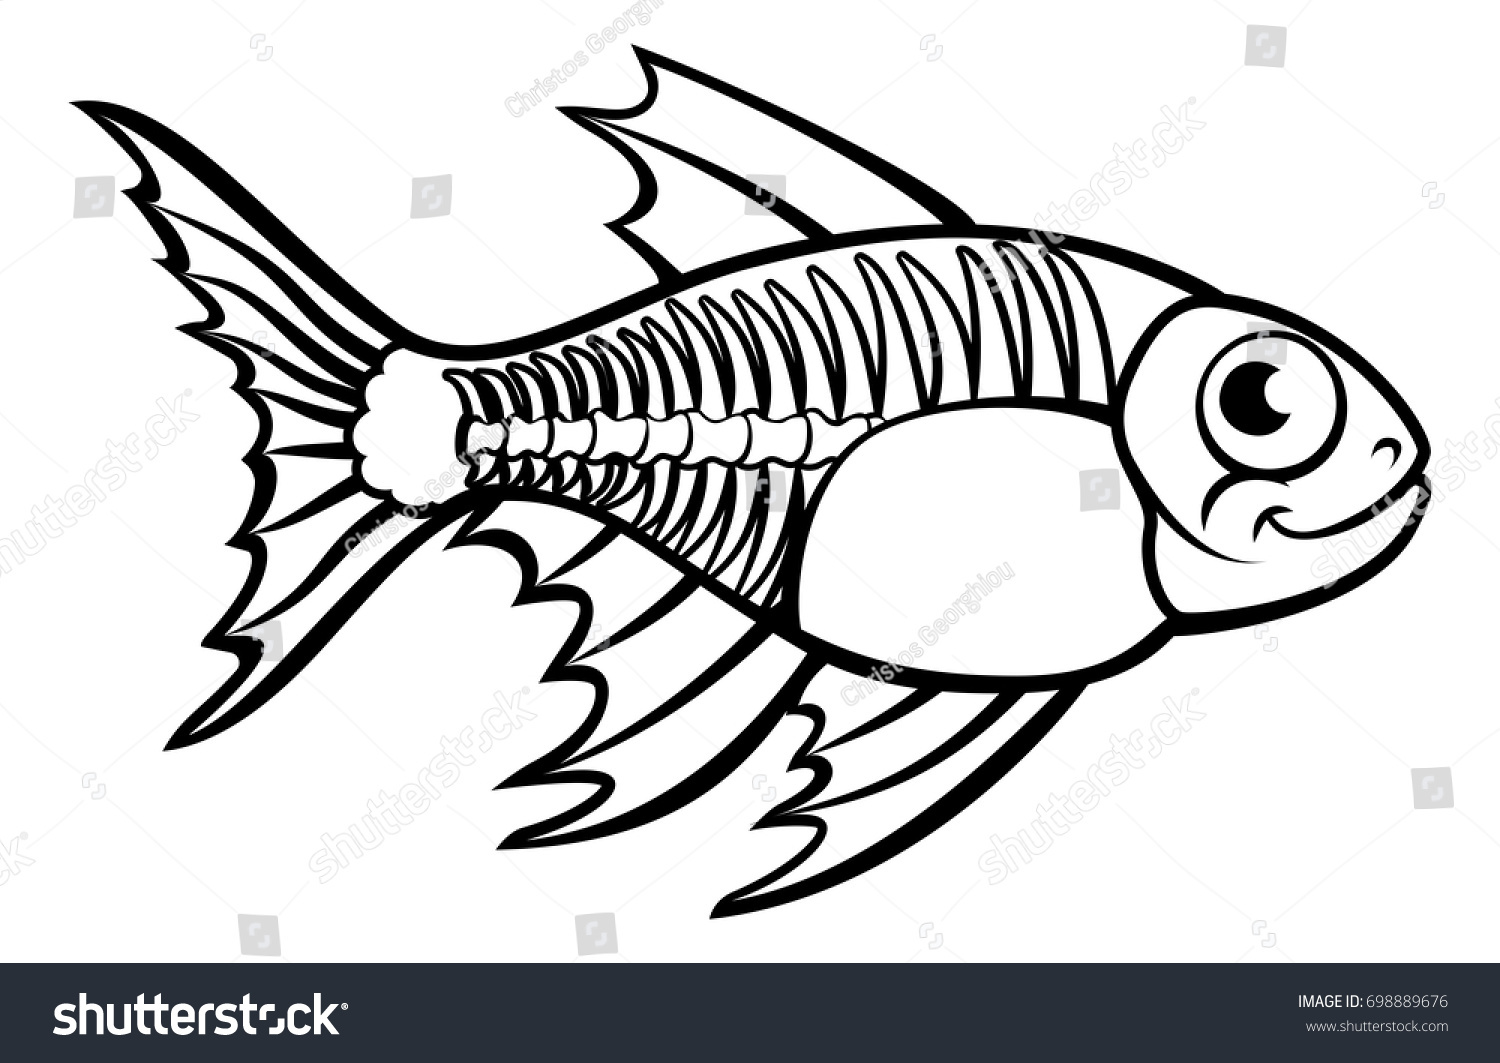 An X Ray Tetra Fish Animal Cartoon Character Outline Coloring Illustration